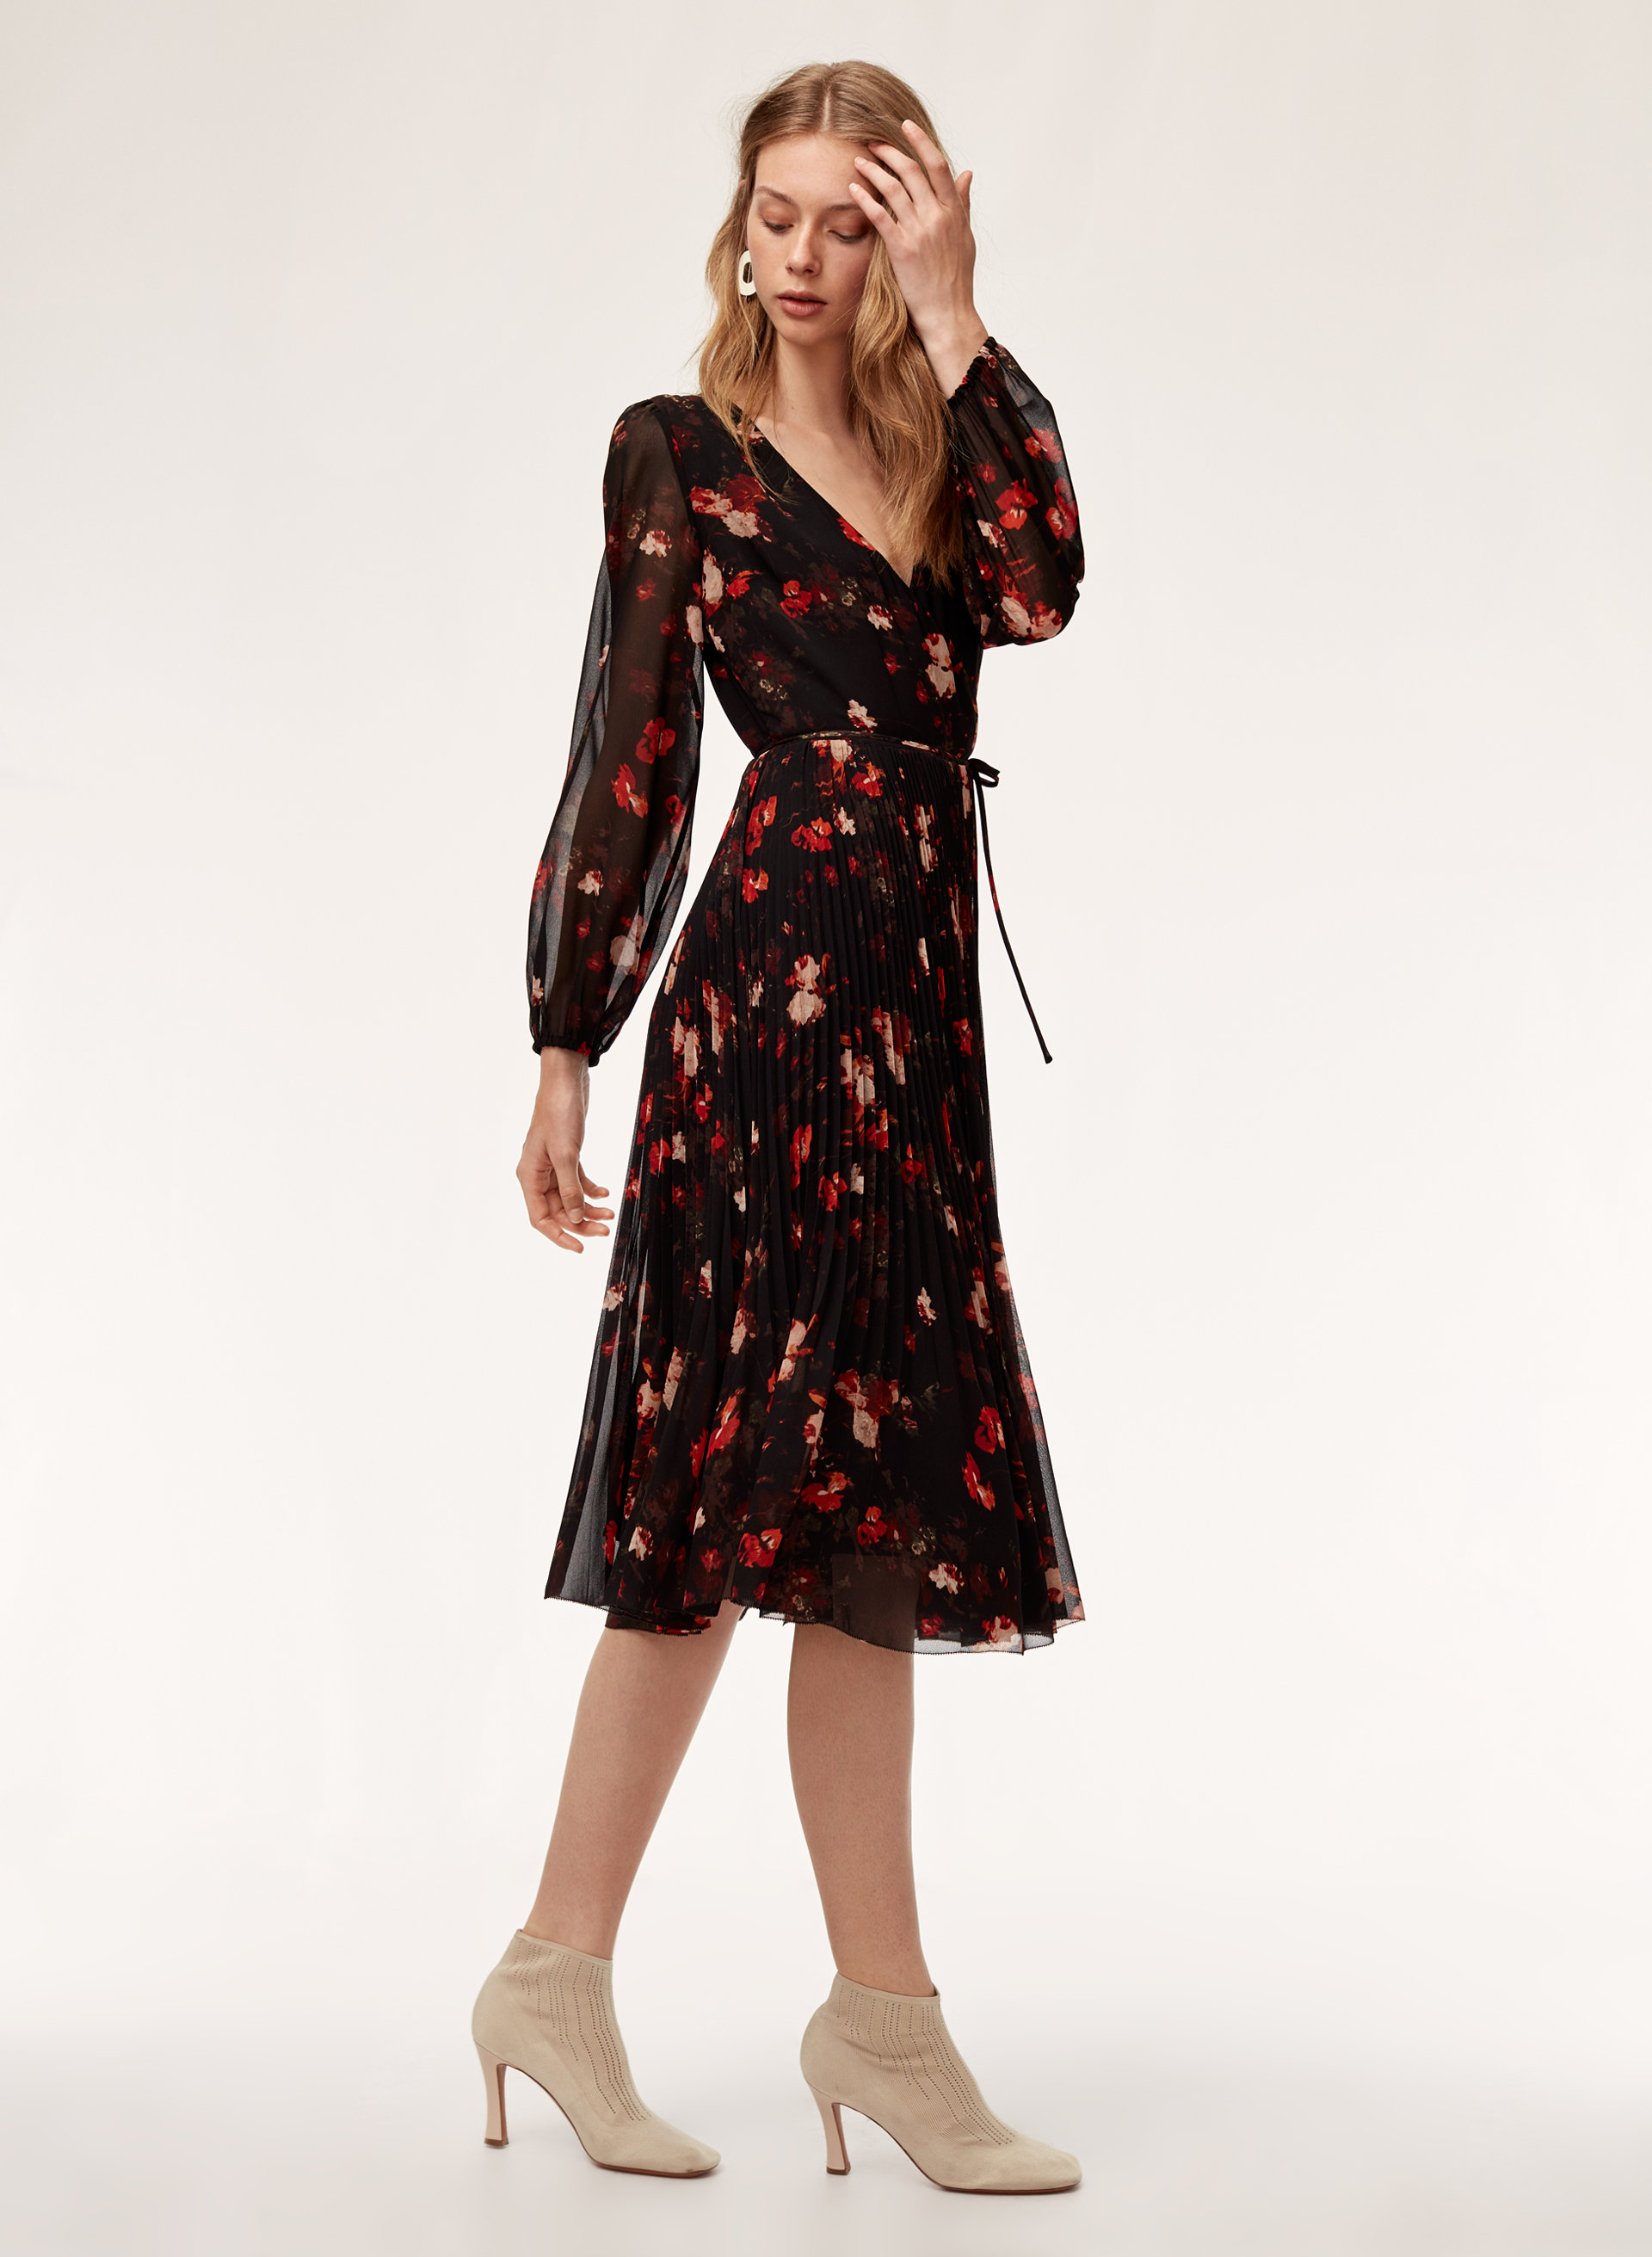 c6e7bb62cdac BEAUNE DRESS LSLV - Long-sleeve, pleated, printed wrap dress